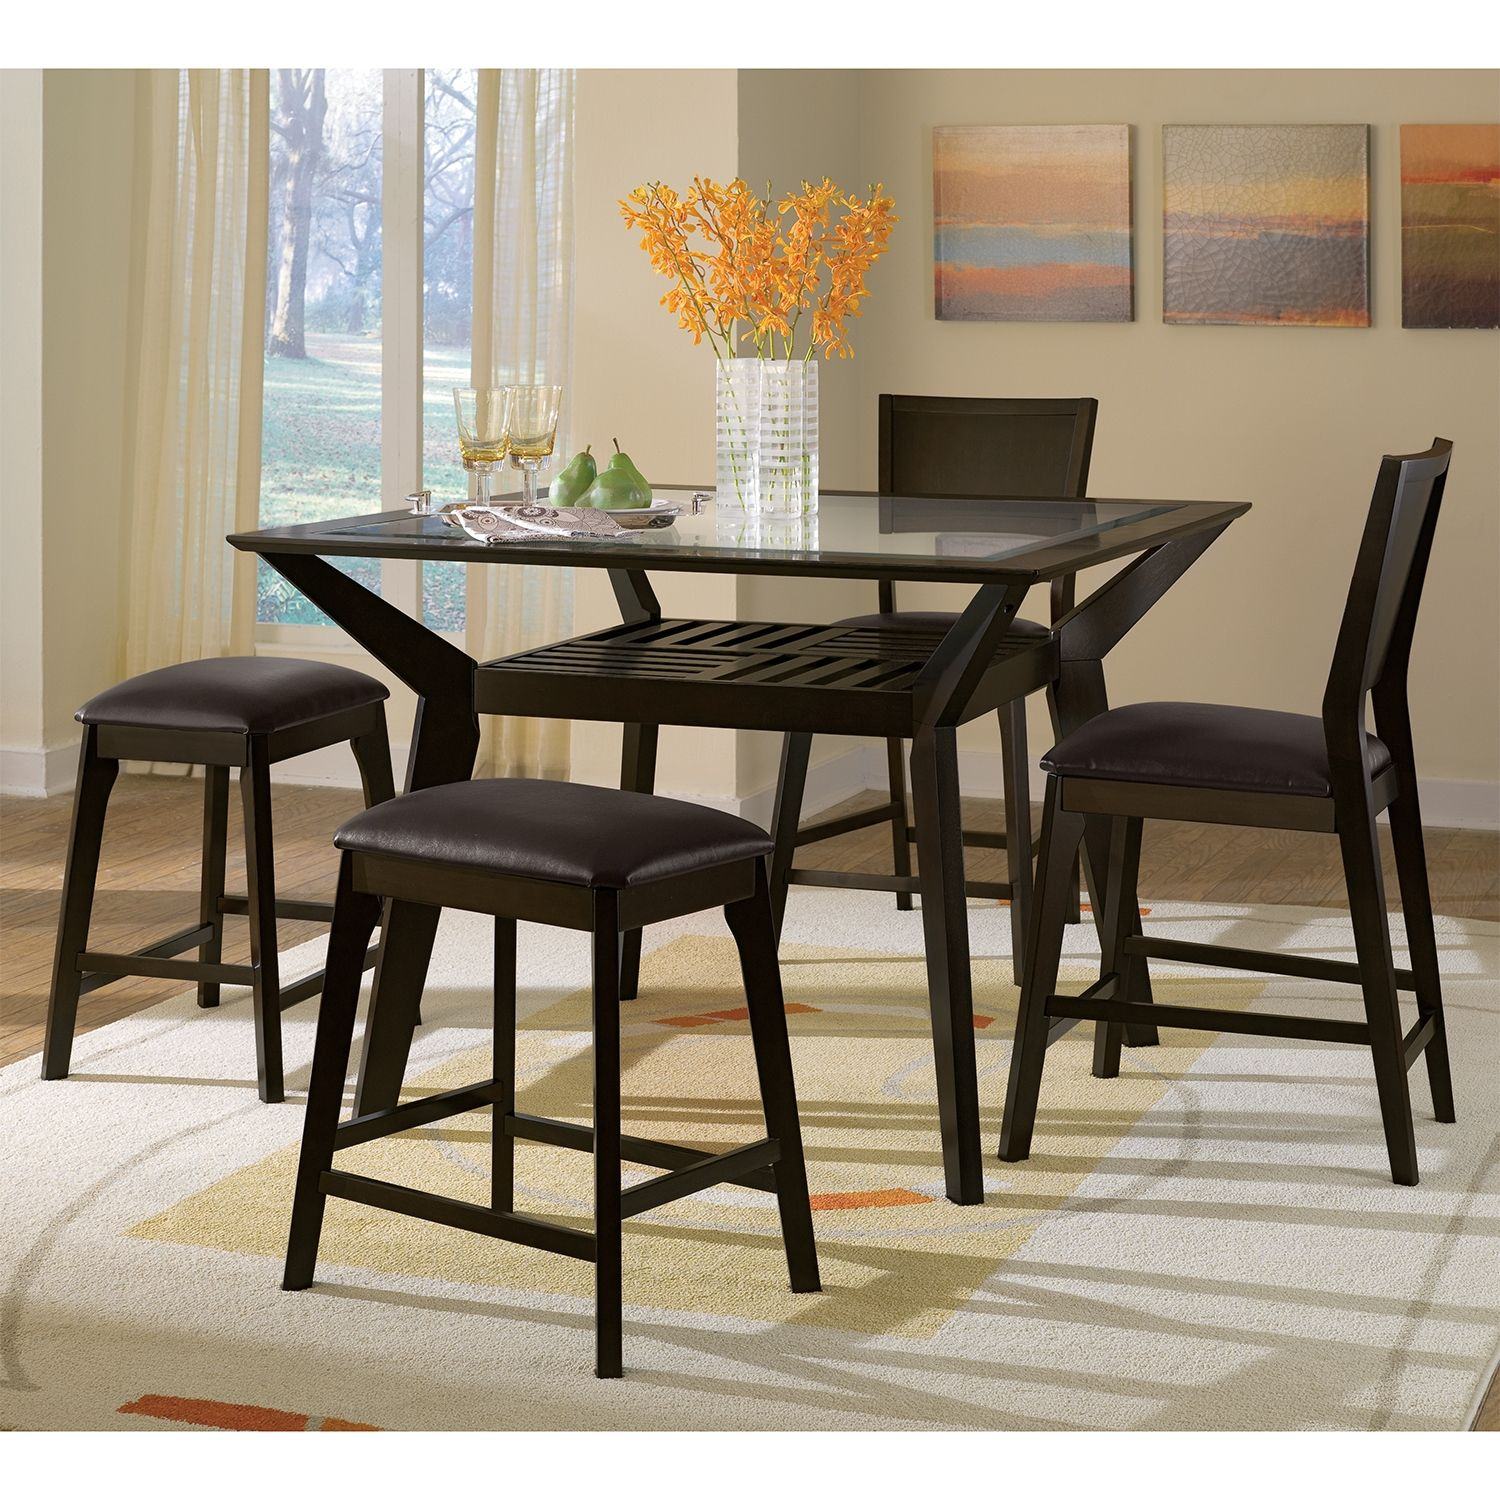 mystic 5 pc. counter-height dinette w/ 2 backless stools | value